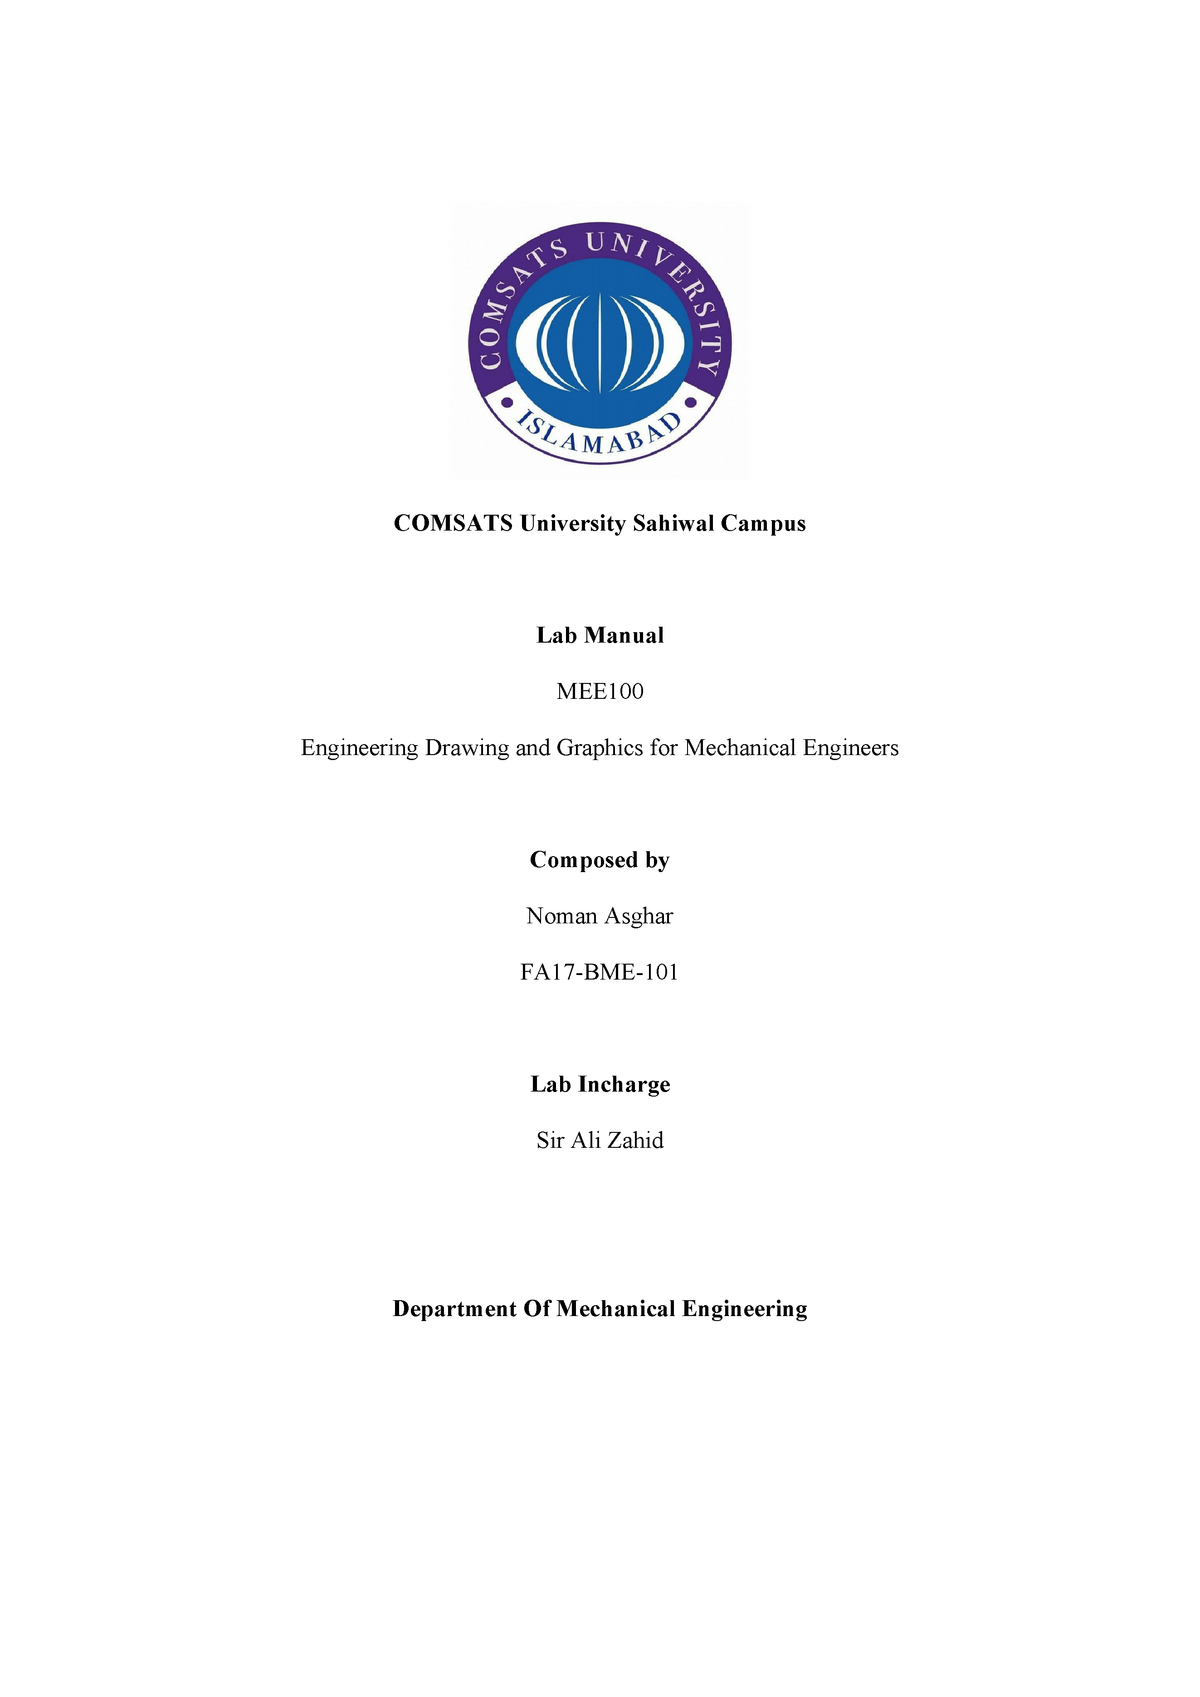 Autocad Lab Report - Engineering Drawing and Graphics MEE100